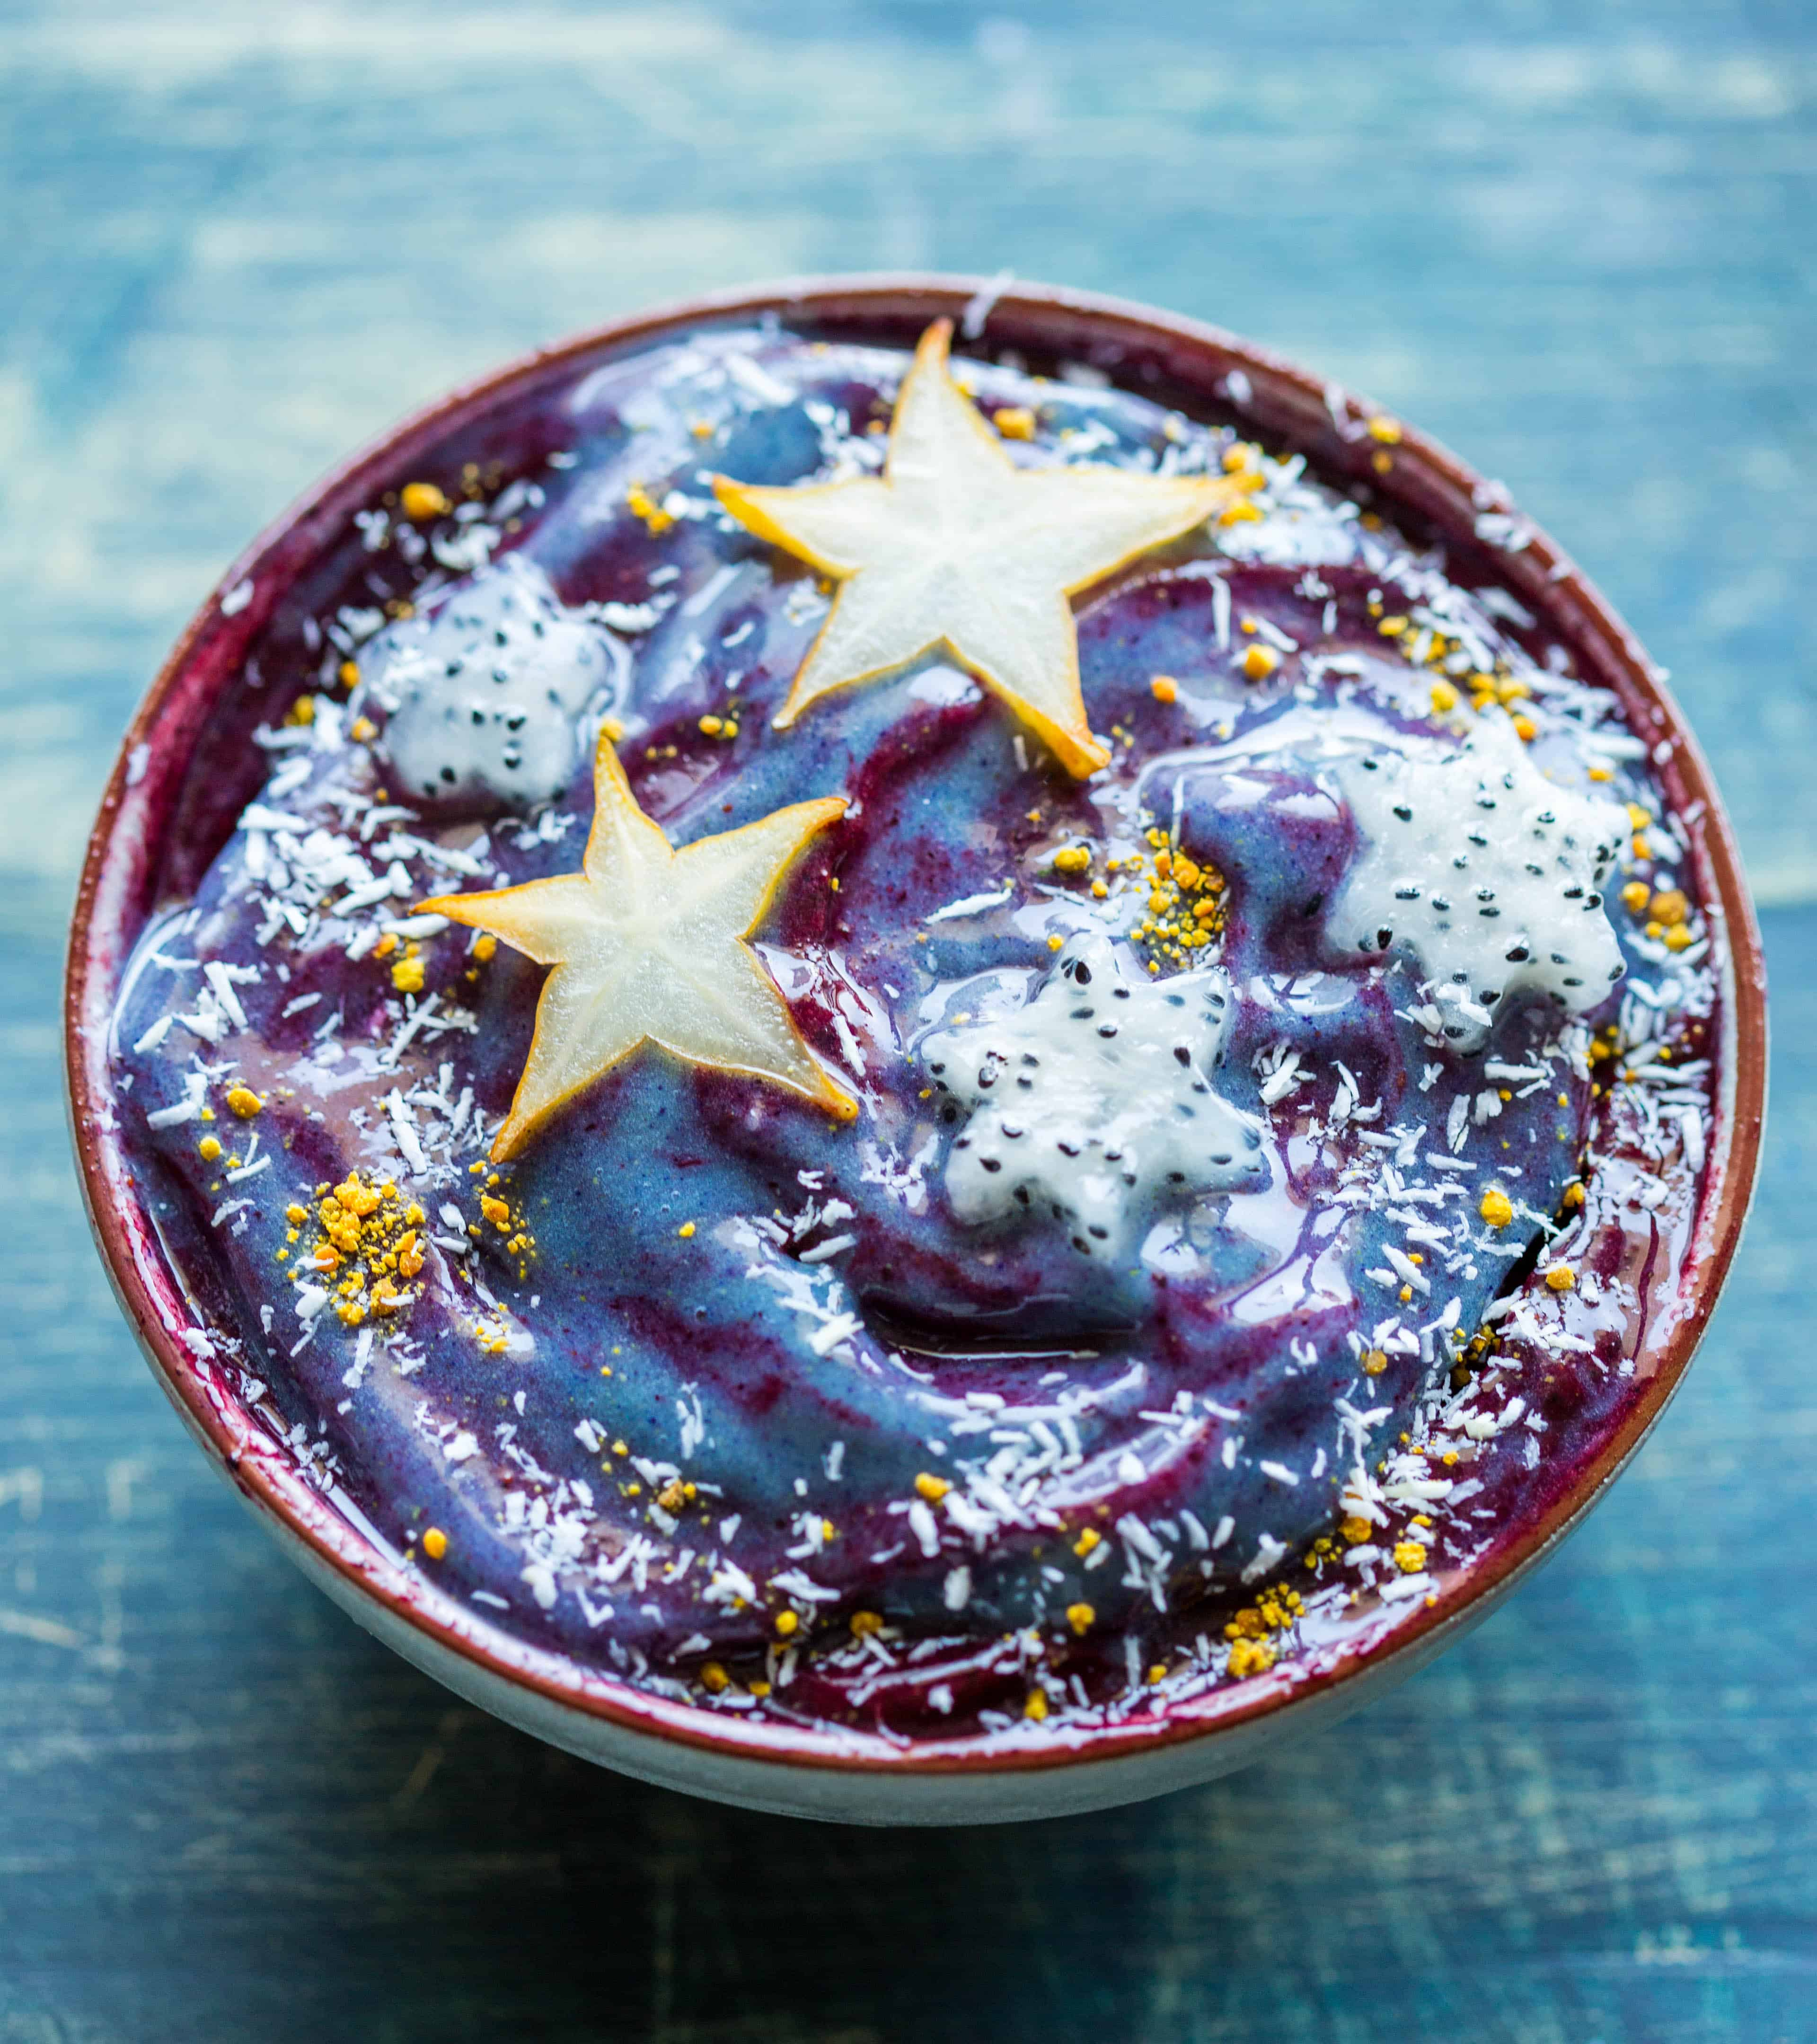 The Art of the Smoothie Bowl by Nicole Gaffney - Starry Night Galaxy Smoothie Bowl